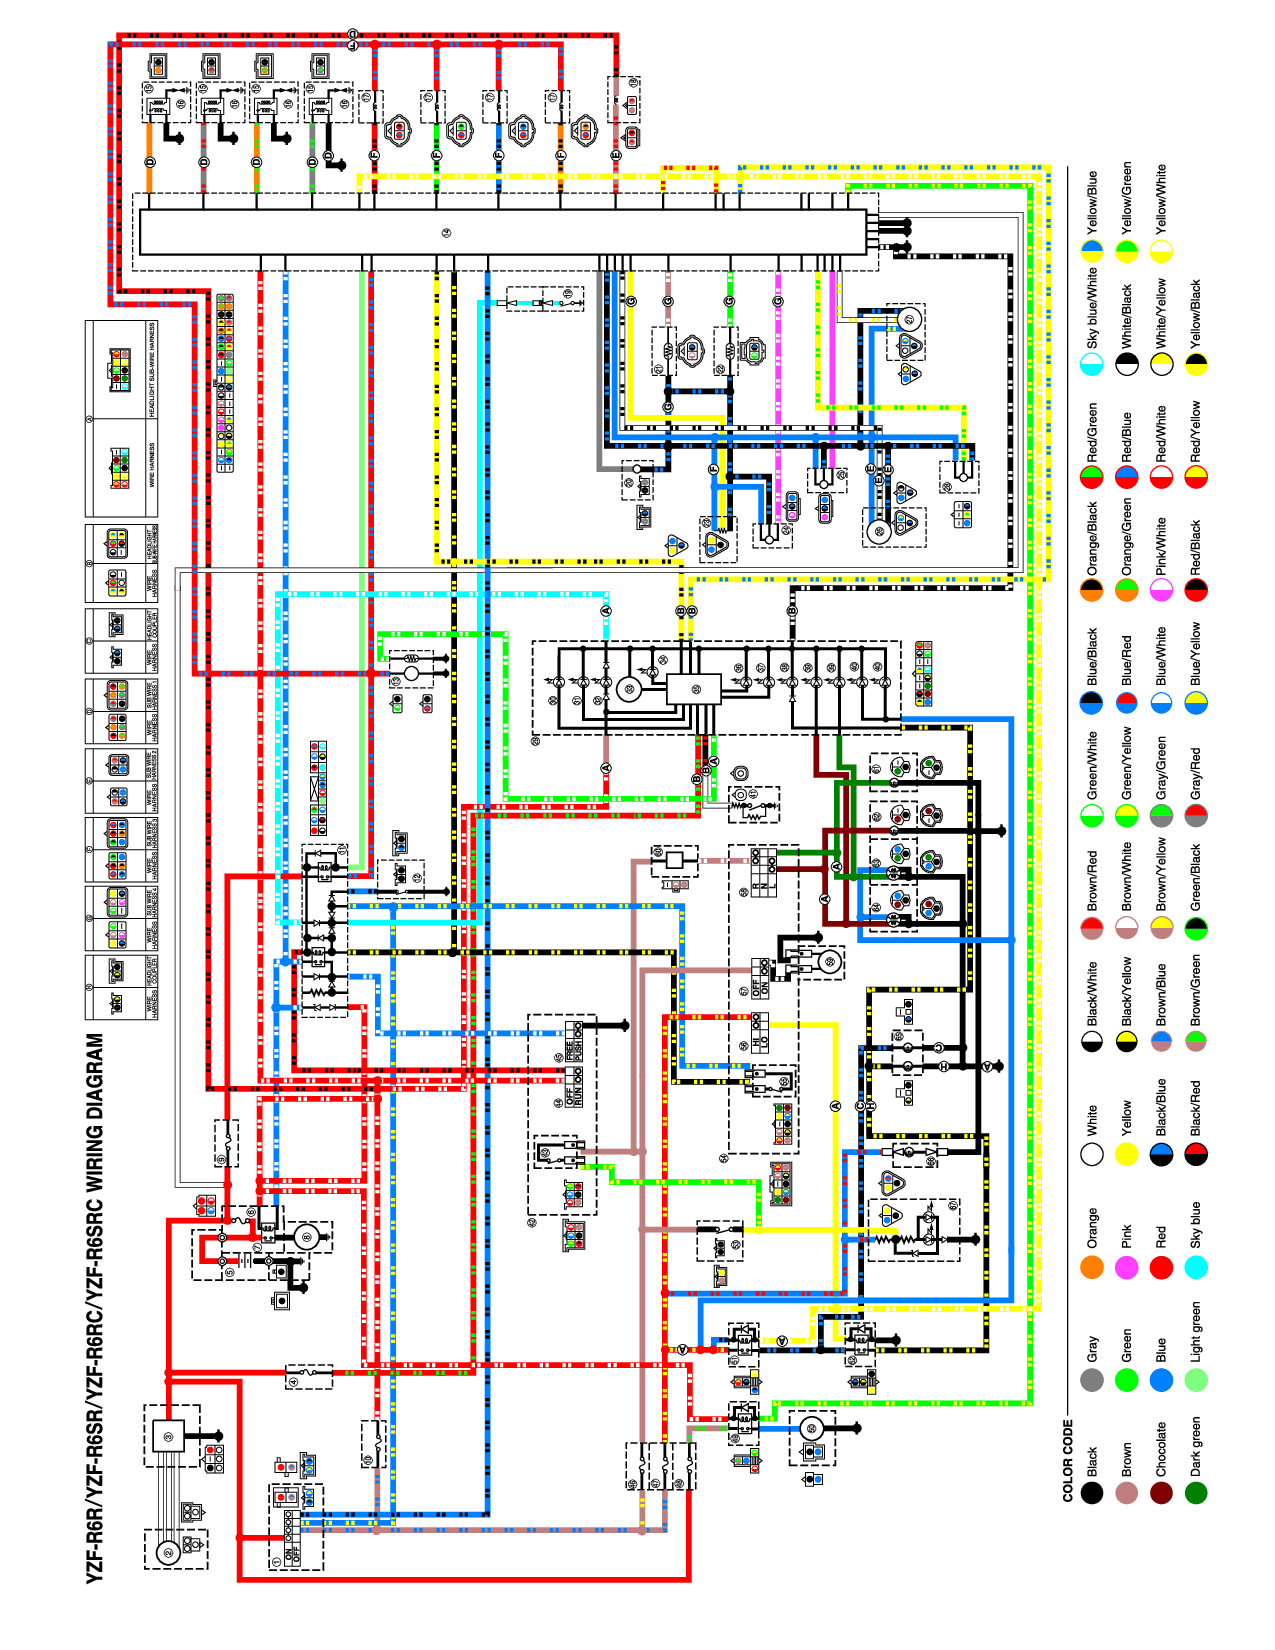 2012 Yamaha R6 Wiring Diagram Full Hd Version Wiring Diagram Snel Yti Fr